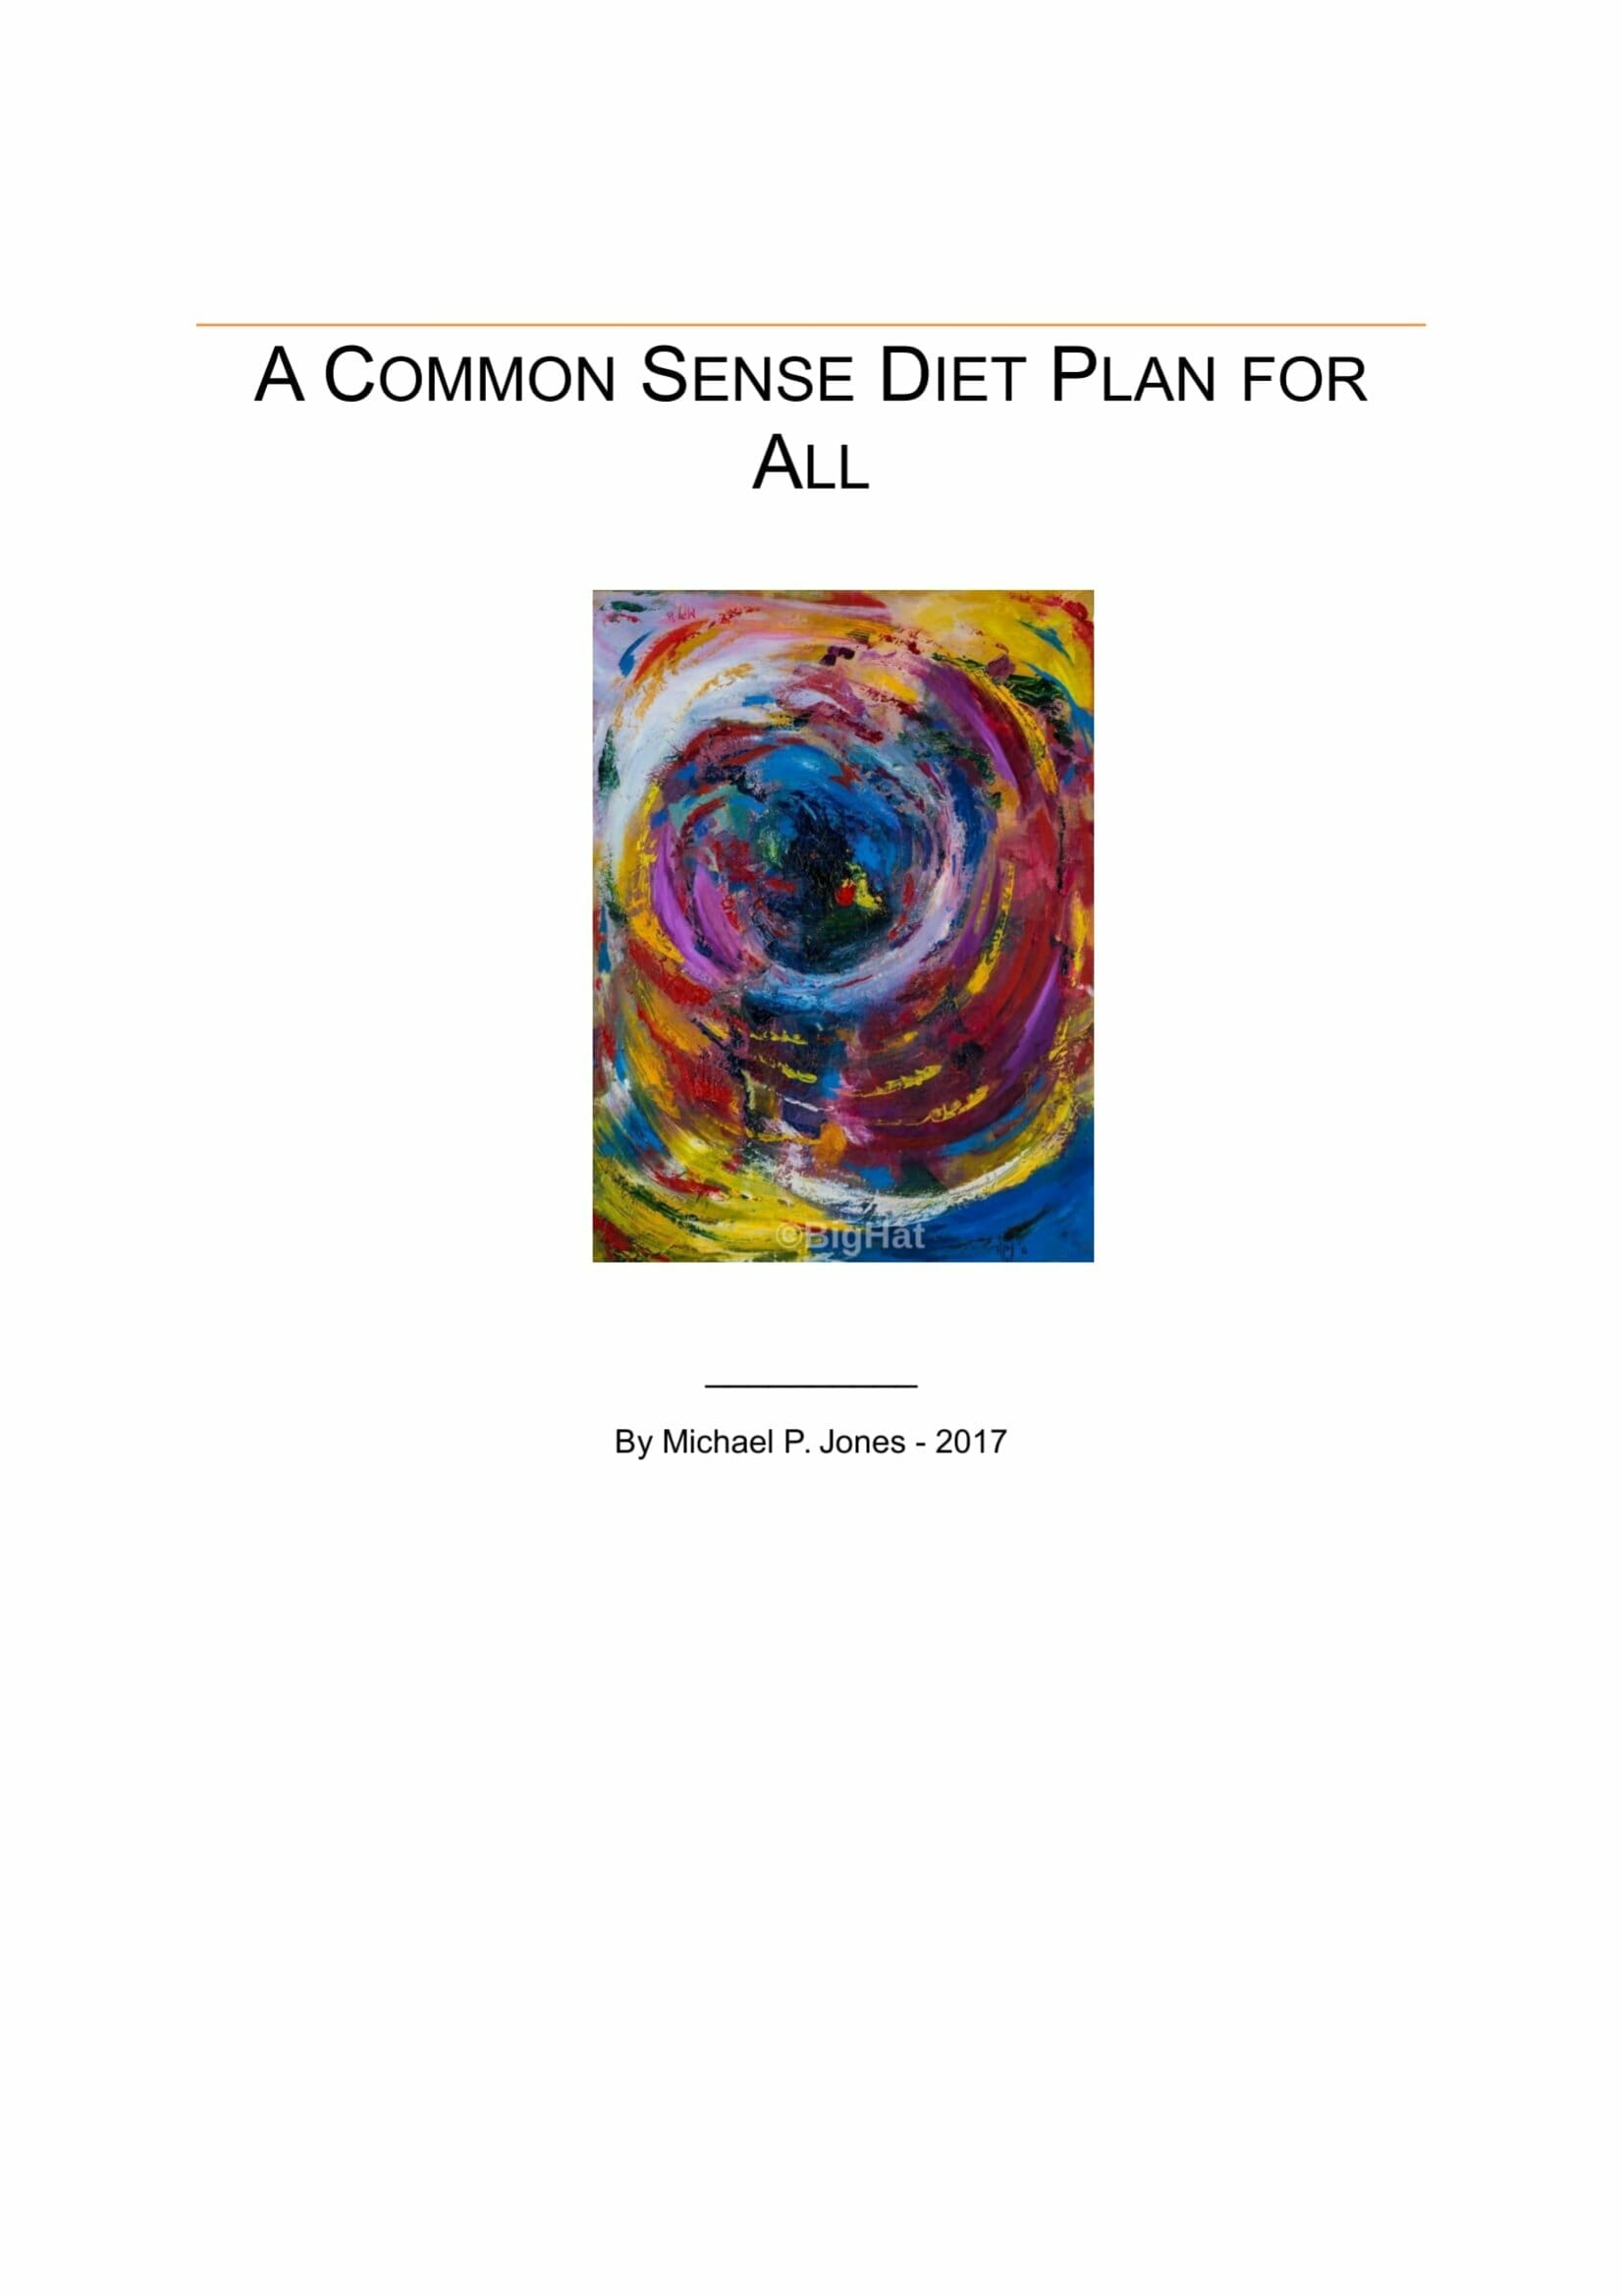 A Common Sense Diet Plan For All Image